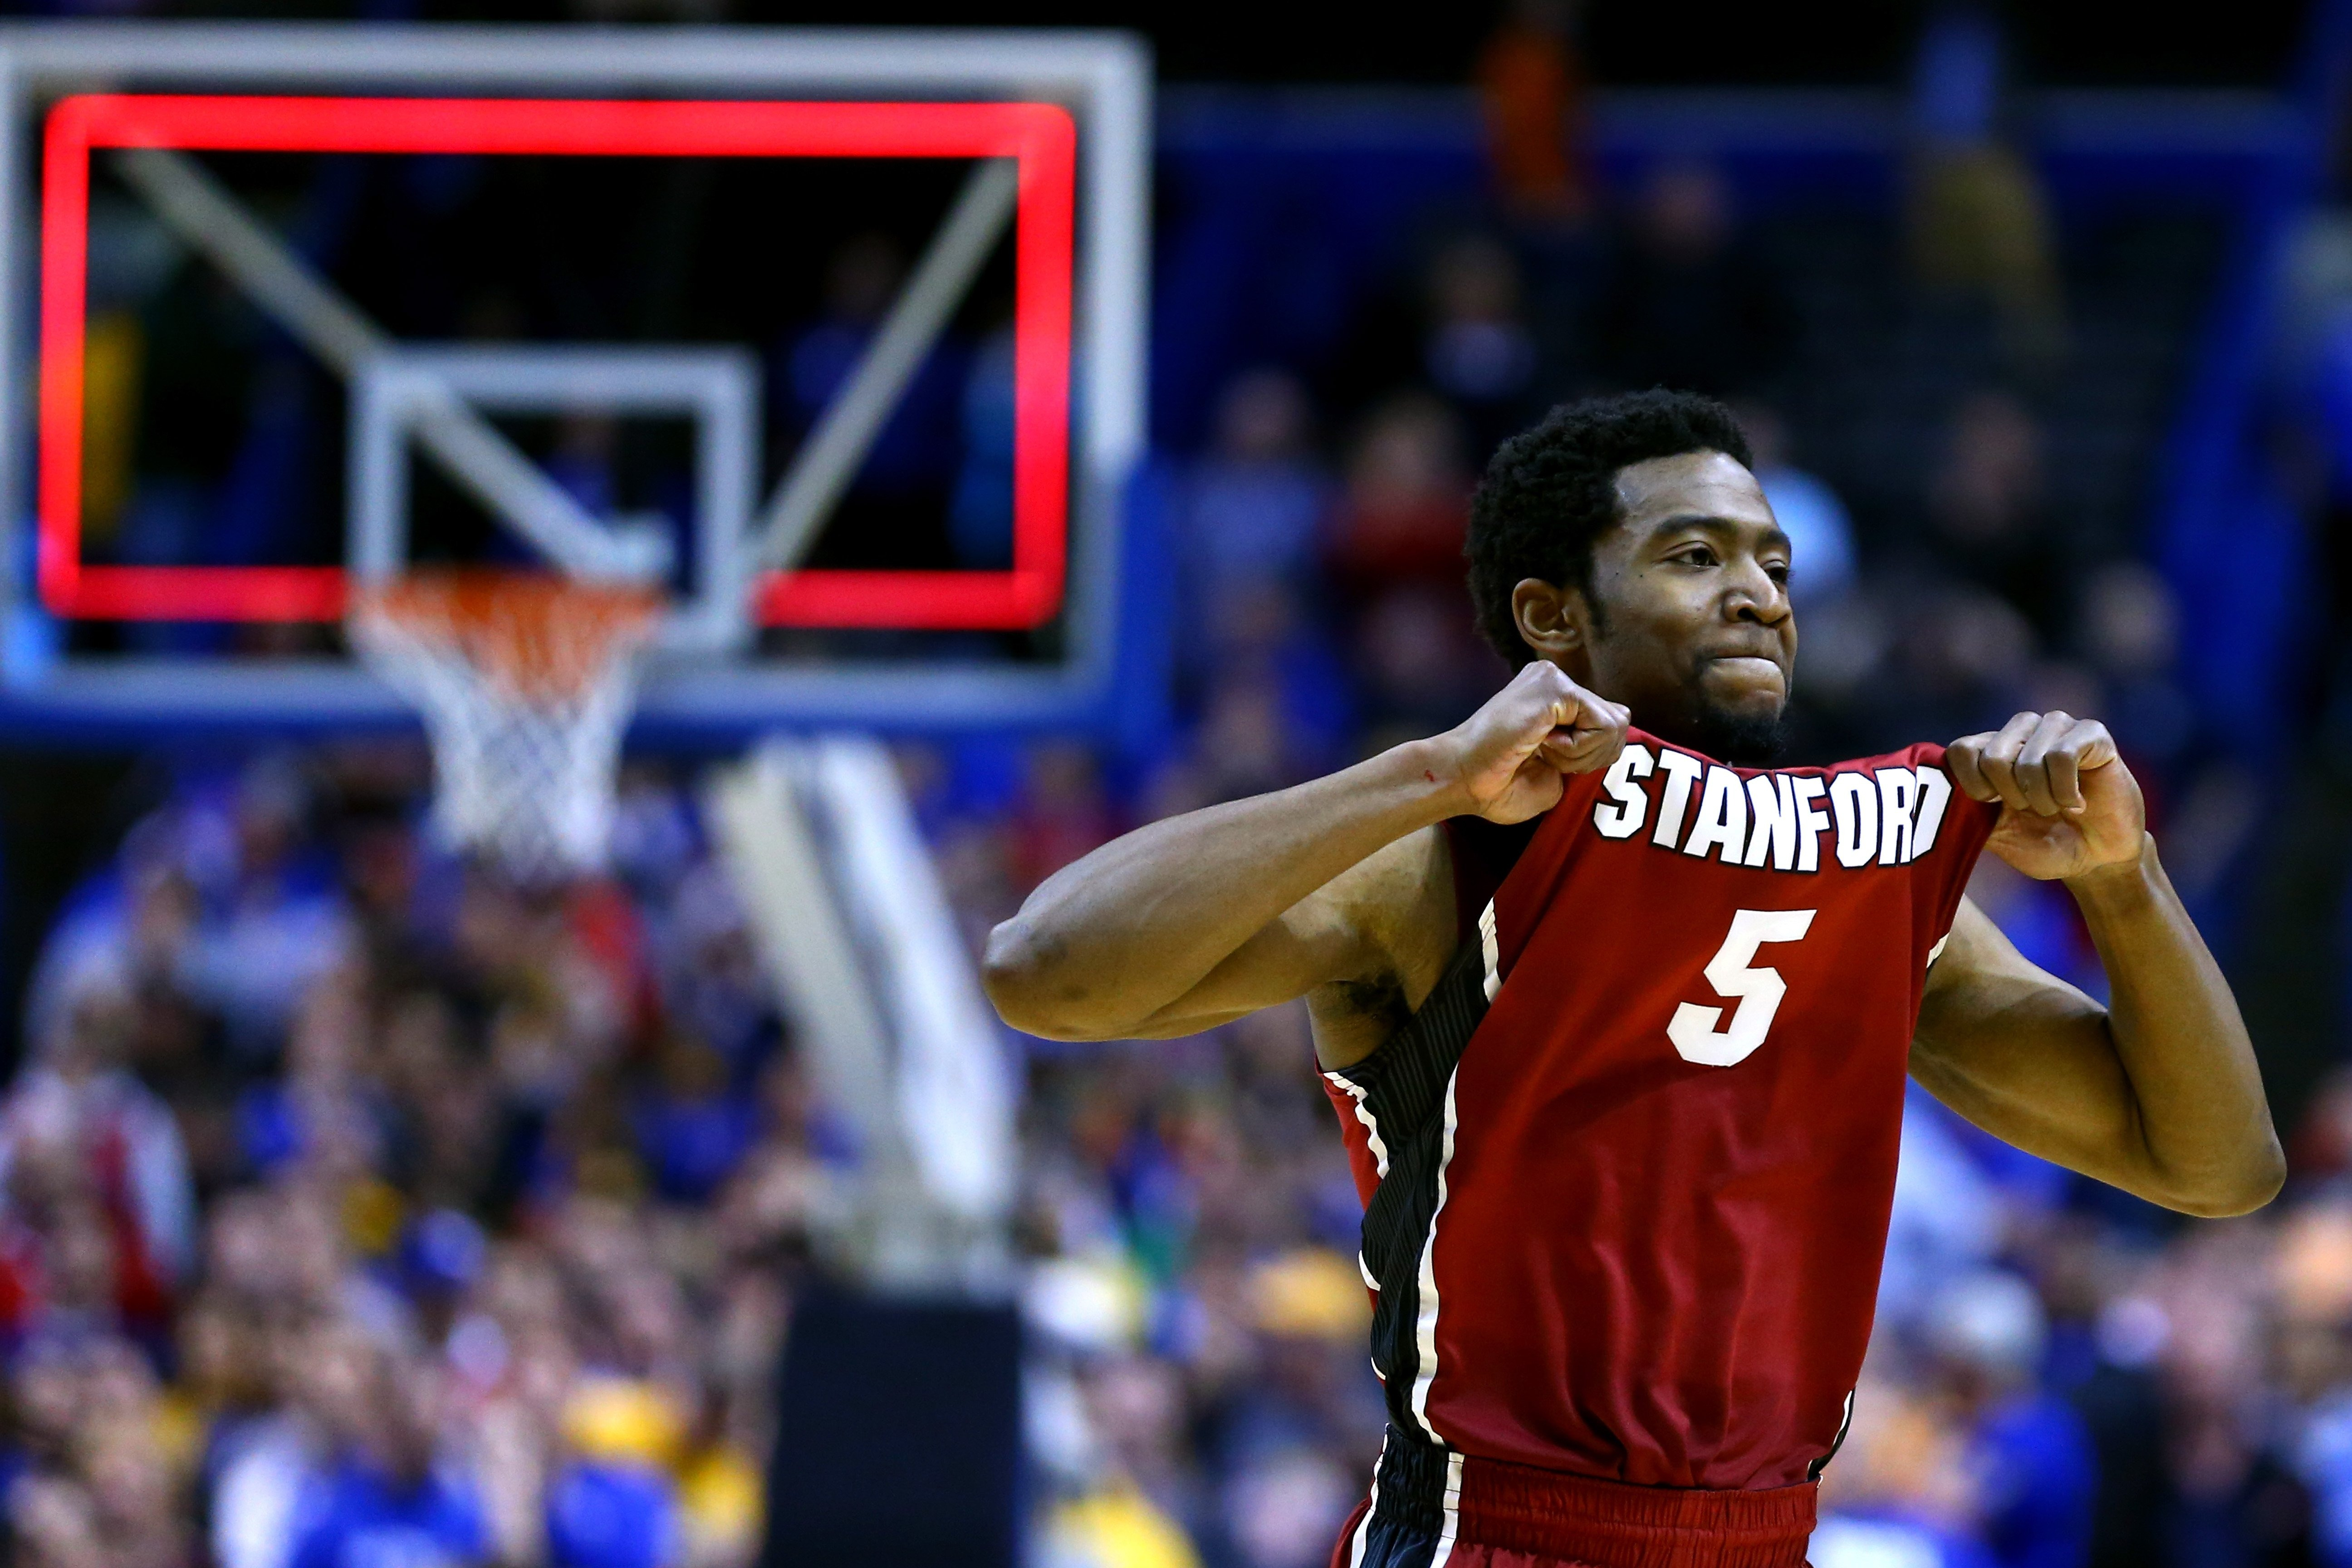 Chasson Randle of the Stanford Cardinal celebrates defeating the Kansas Jayhawks 60 to 57 during the third round of the 2014 NCAA Men's Basketball Tournament at Scottrade Center on March 23, 2014 in St Louis, Missouri.